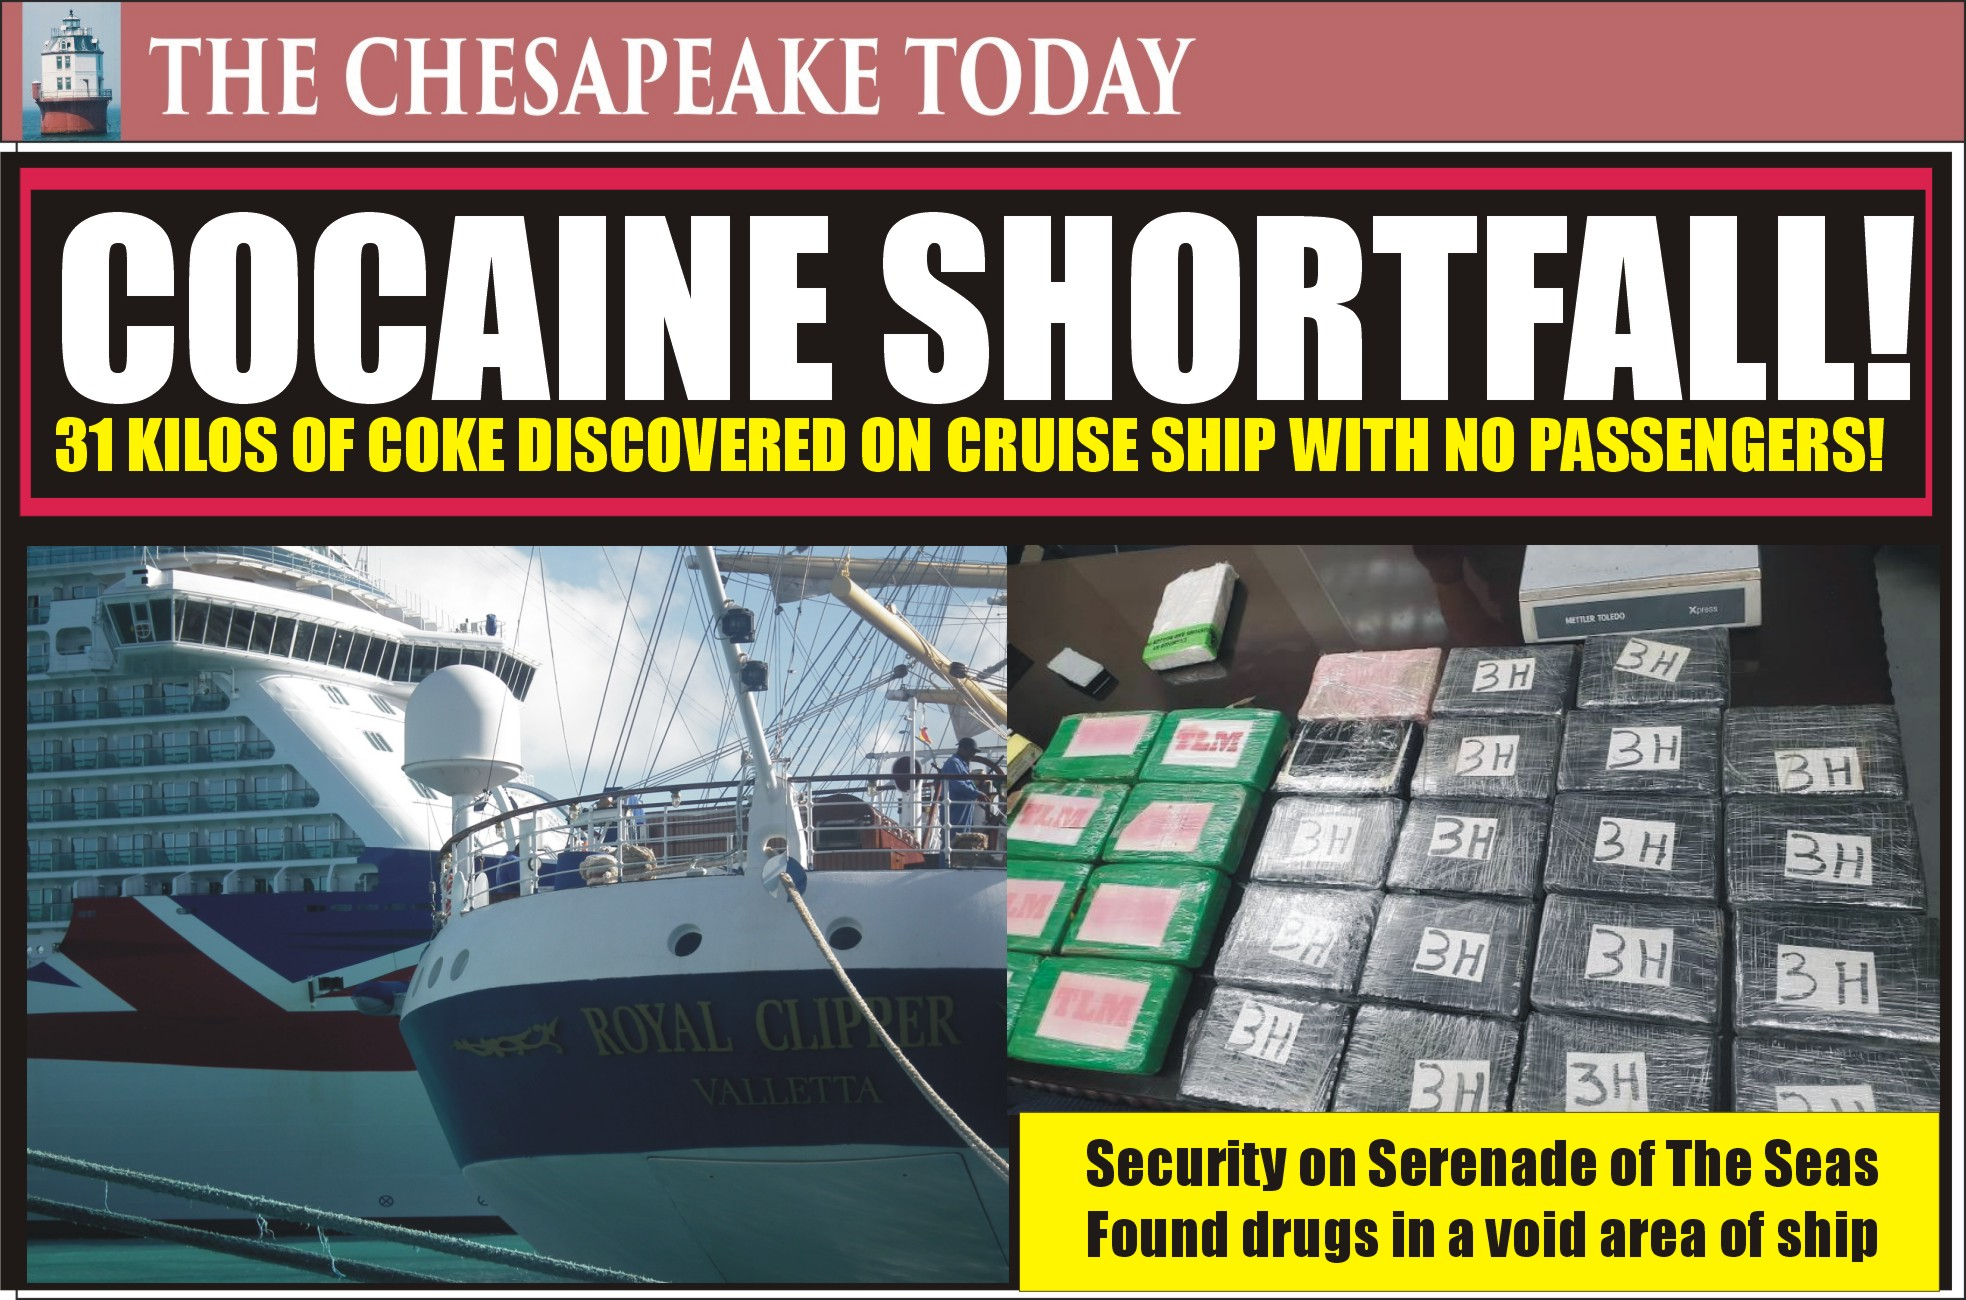 COCAINE SHORTAGE! Special alert for cokeheads and dealers expecting new delivery at Fort Lauderdale; 31 kilos discovered on a cruise ship